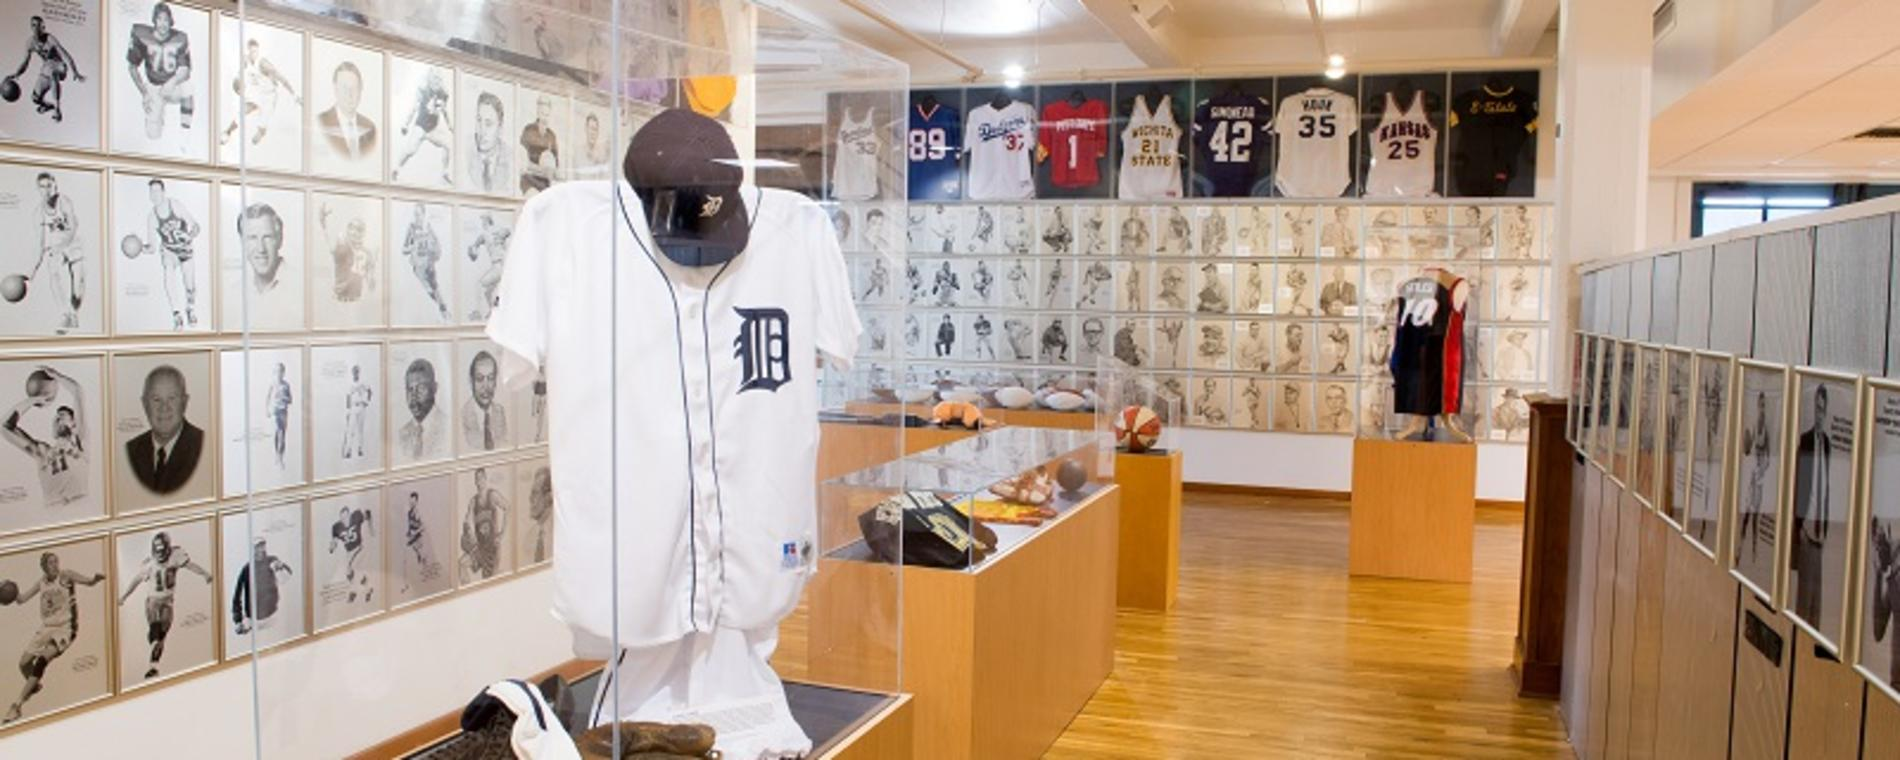 KS HoF basketball uniform Visit Wichita